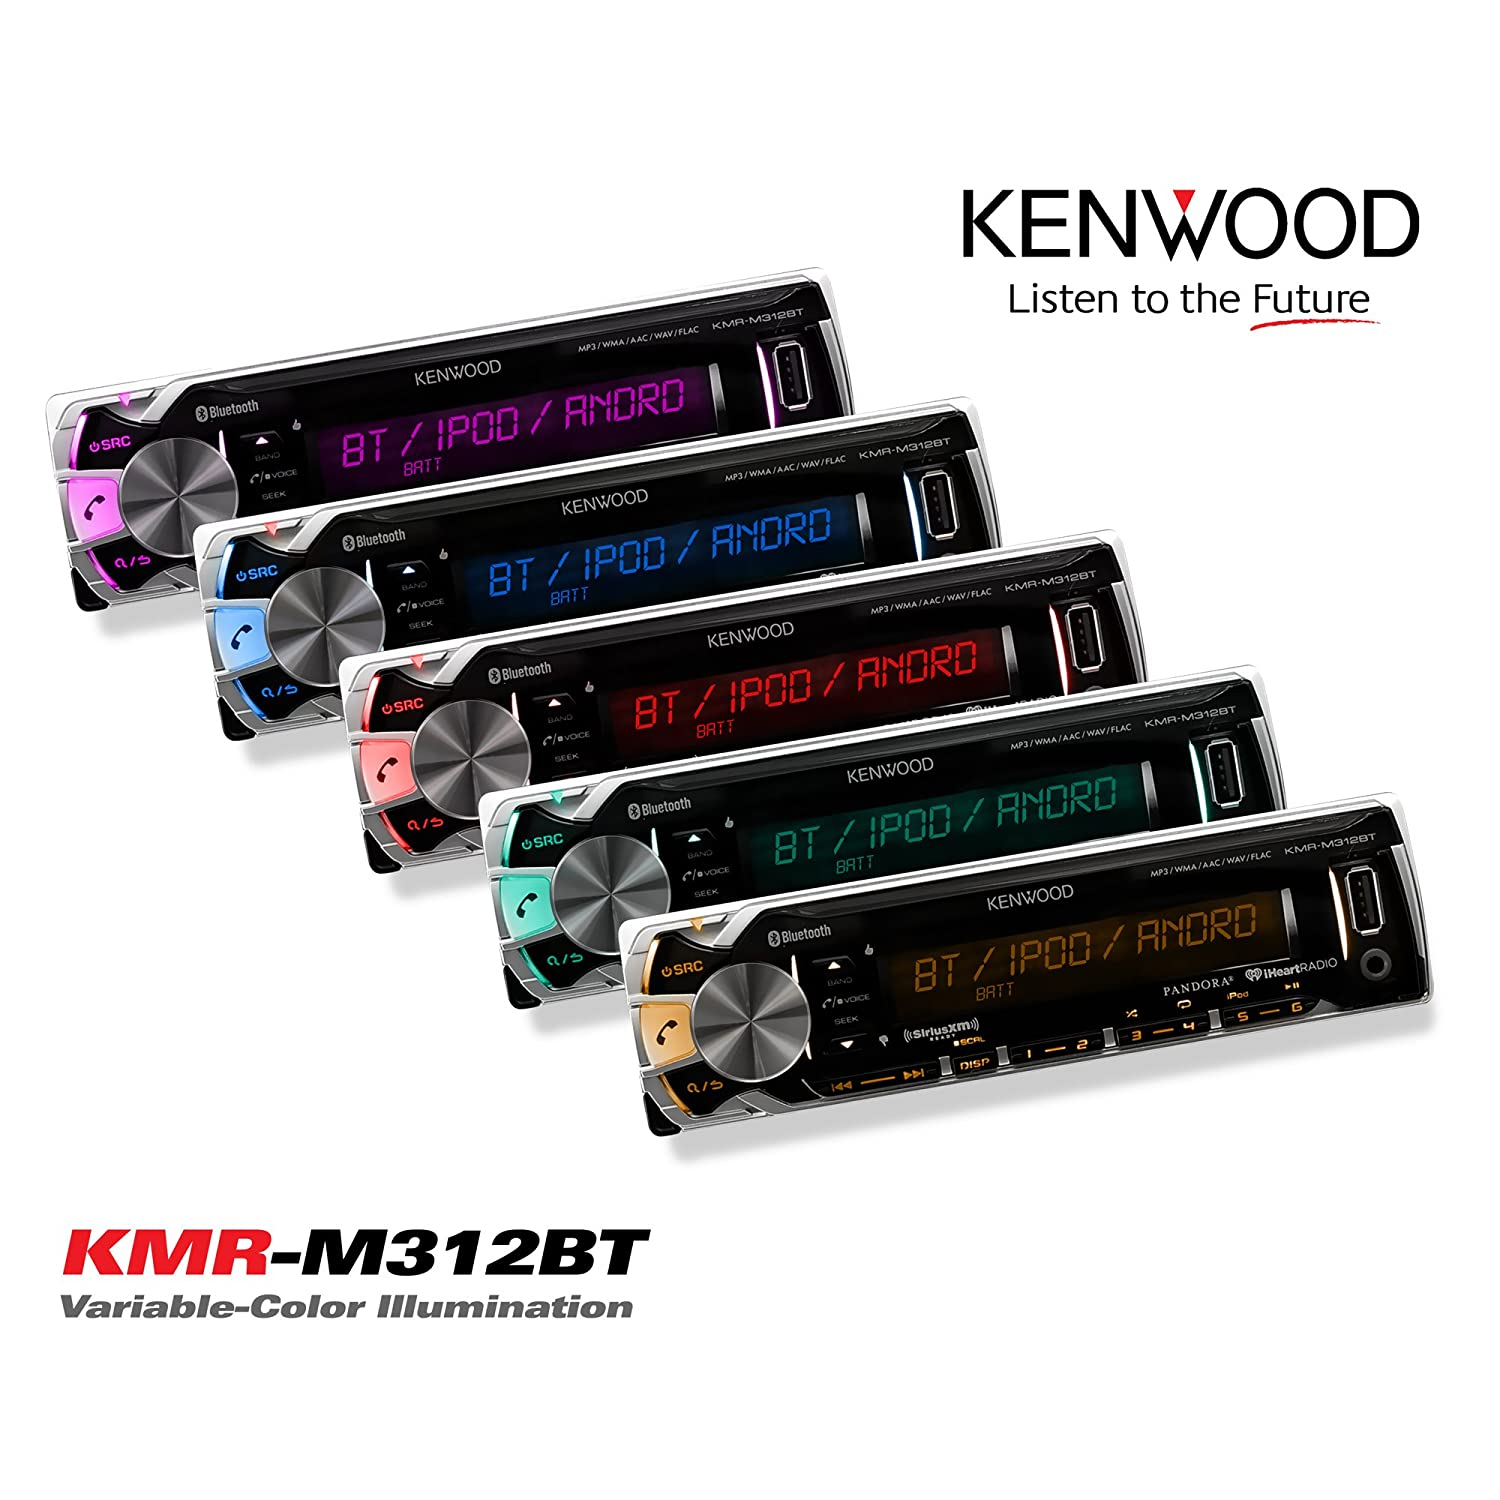 Complete Marine Outdoor Aud New Kenwood Marine Boat Yacht Bluetooth Digital USB AUX iPod iPhone AM//FM Radio Stereo Player With 4 X 6.5 Inch Kenwood Marine Audio Speakers Kenwood KAC-M2504 Compact 4-channel Marine Amplifier And Enrock Marine 45 Antenna